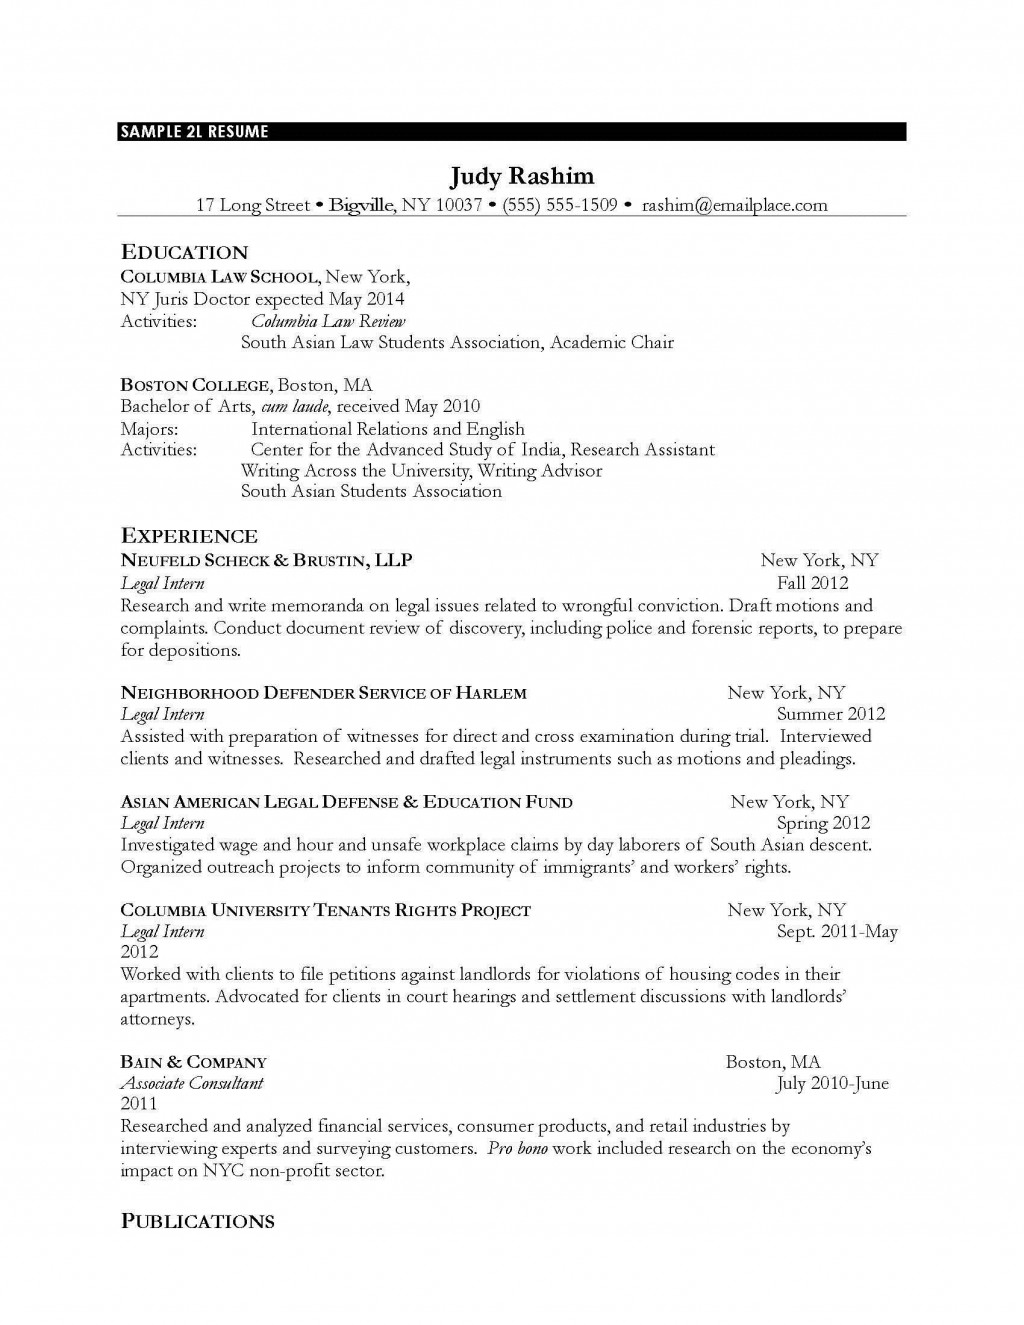 law student resume template word addictionary school archaicawful ideas business analyst Resume Law School Resume Template Word